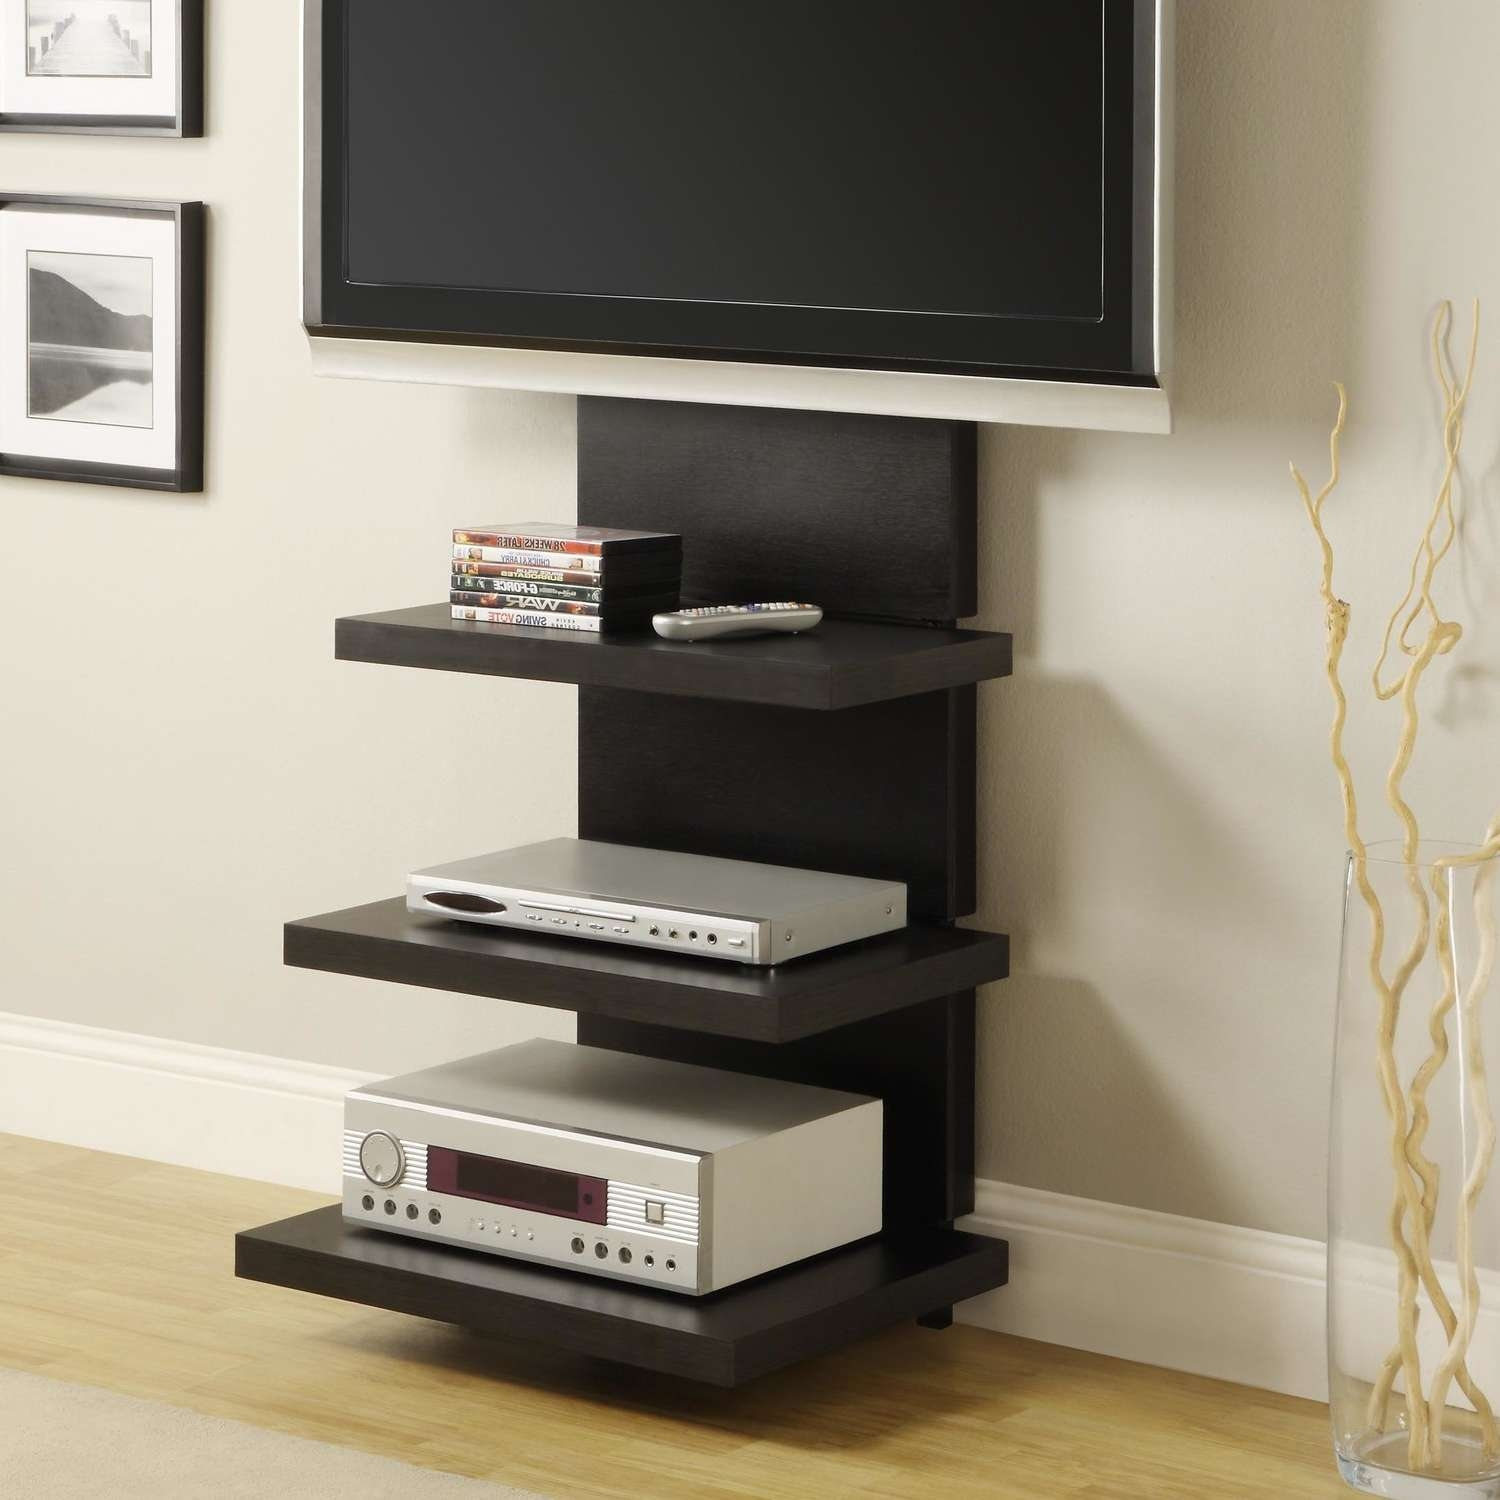 Wall Mounteddia Cabinet Black Stained Wood Storage And Tv Stand Inside Modern Tv Stands With Mount (View 14 of 15)